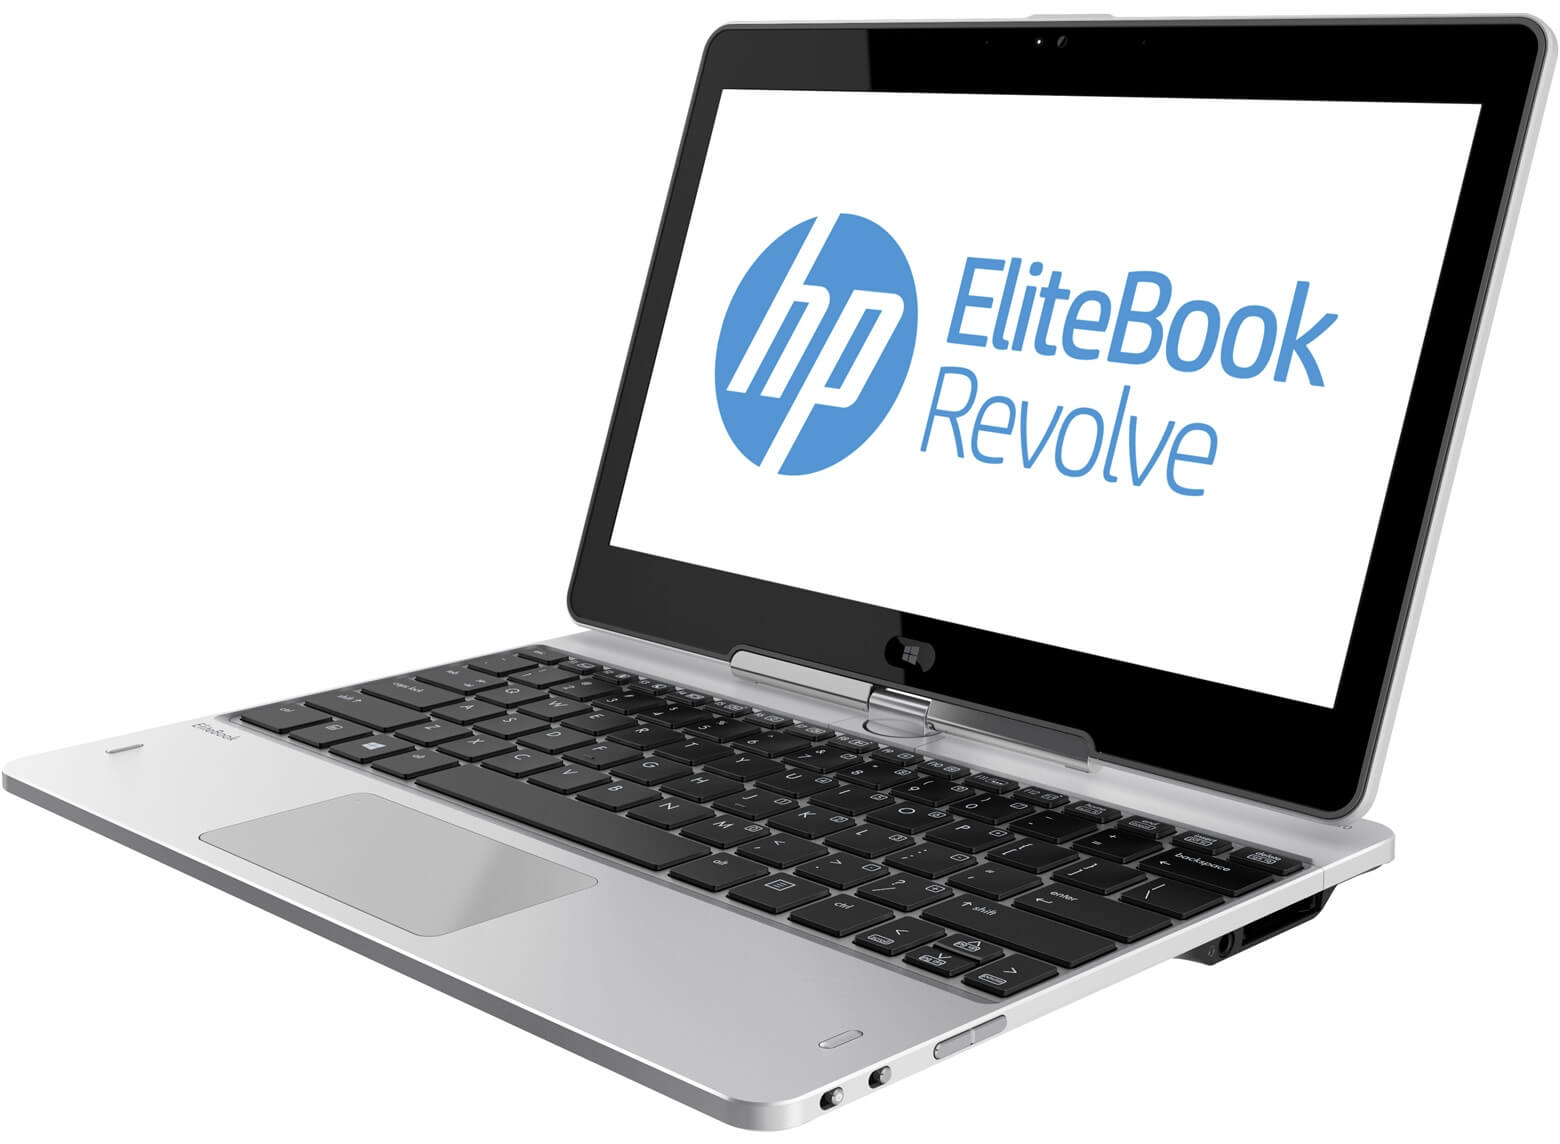 HP ELITEBOOK REVOLVE 810 G2 TABLET I5-4300U 1.9 / 8192 MB DDR3L / 256 GB SSD M.2 / SYSTEM WINDOWS 10 REFURBISHED PL / 11.6